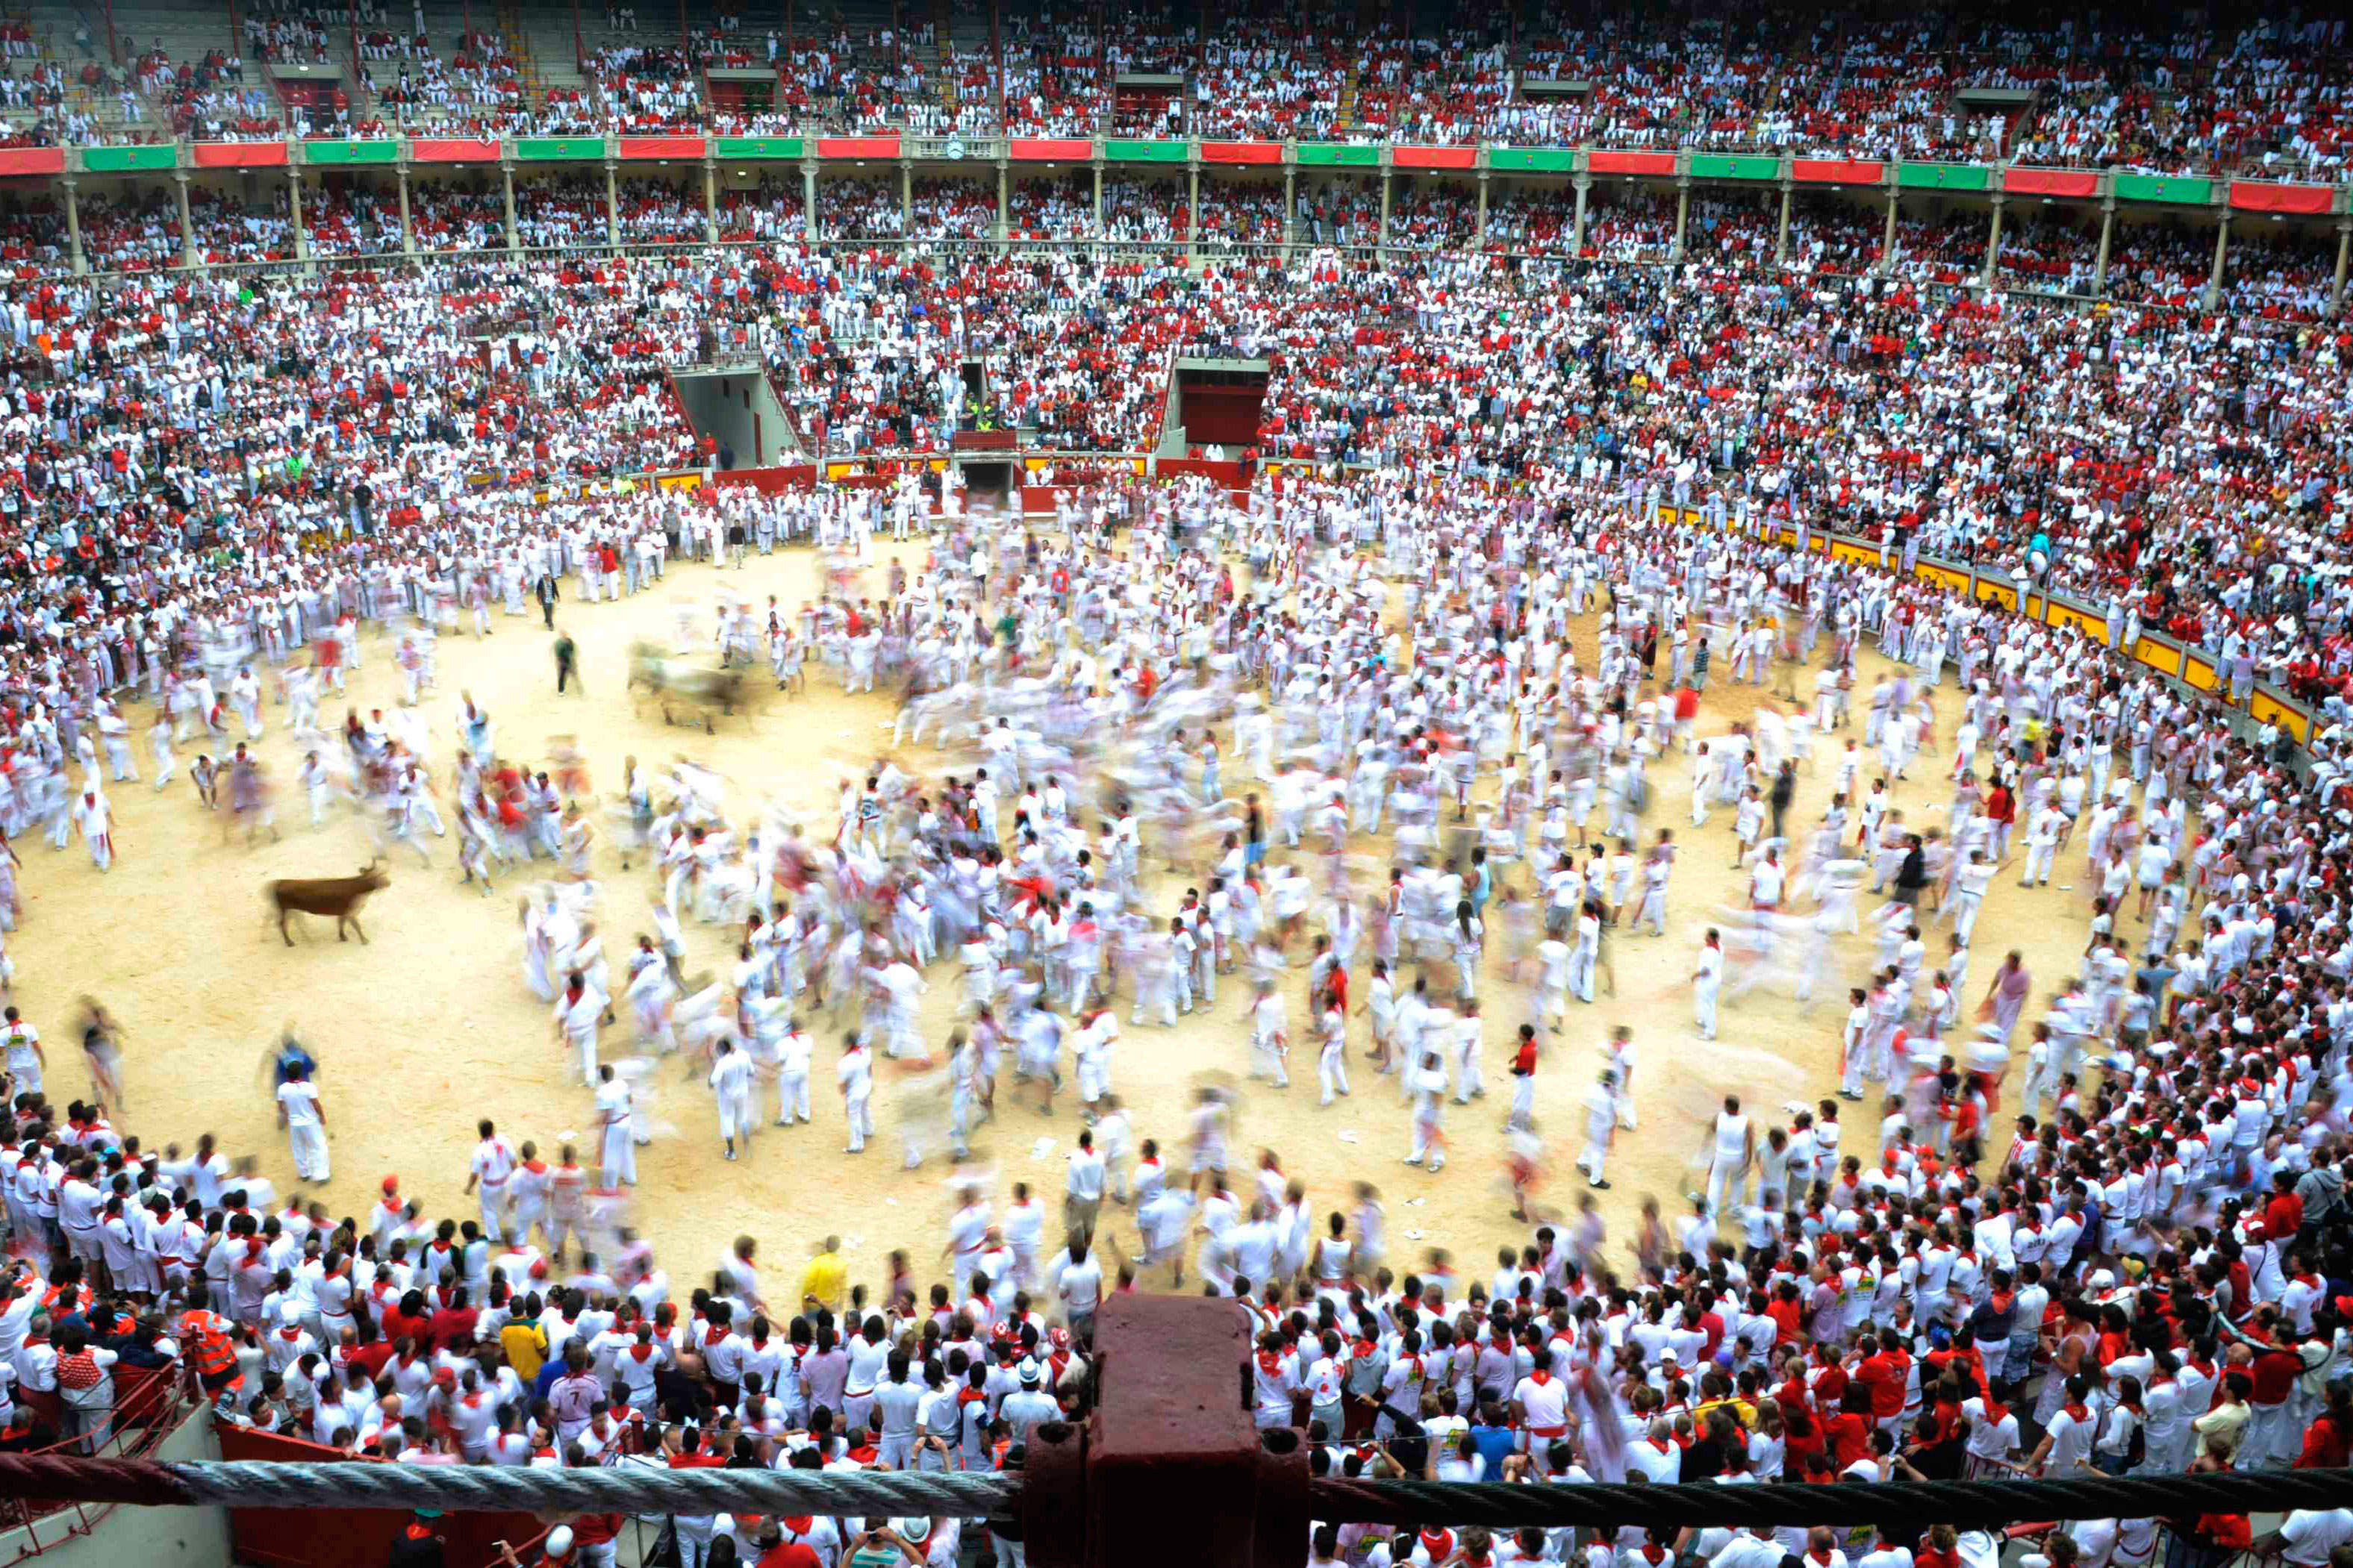 July 7, 2011. A wild cow chases runners at the bullring following the first running of the bulls of the San Fermin festival in Pamplona. Four people suffered minor injuries in the run that lasted two and a half minutes, according to local news sources.